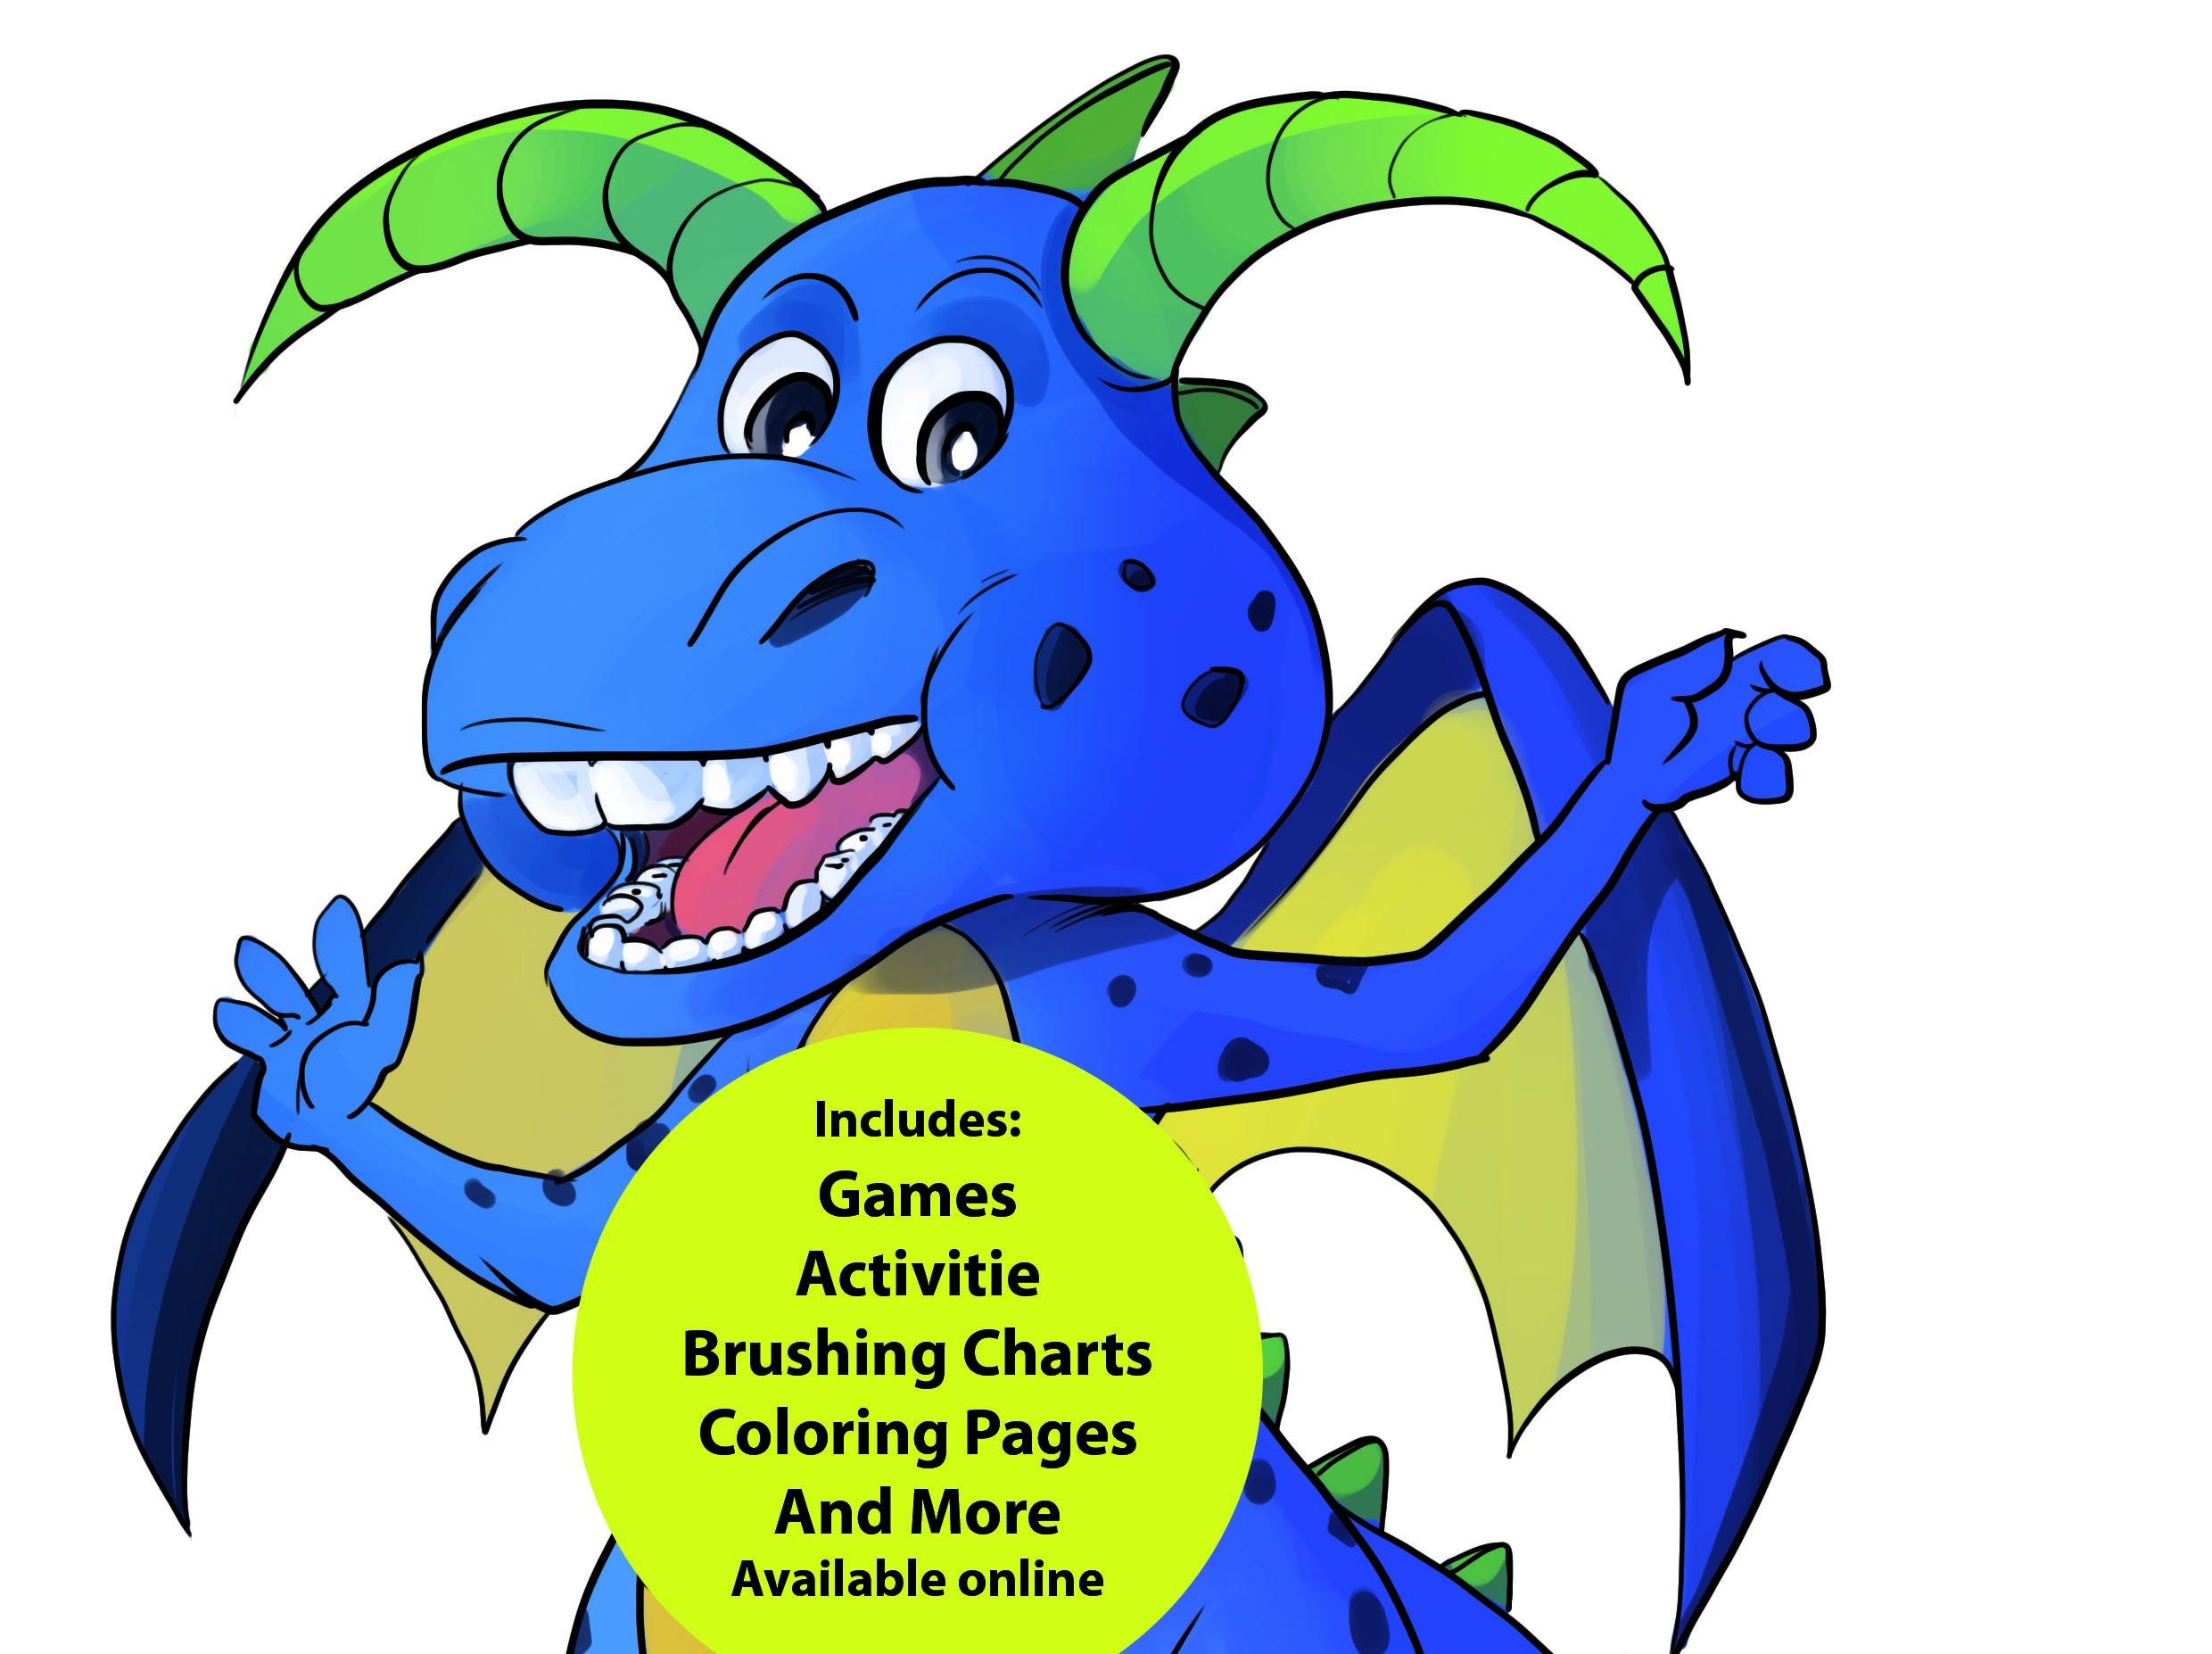 Oral Health Presentation Puppet Magi Dragon Educational Plush by StarSmilez (Image #3)